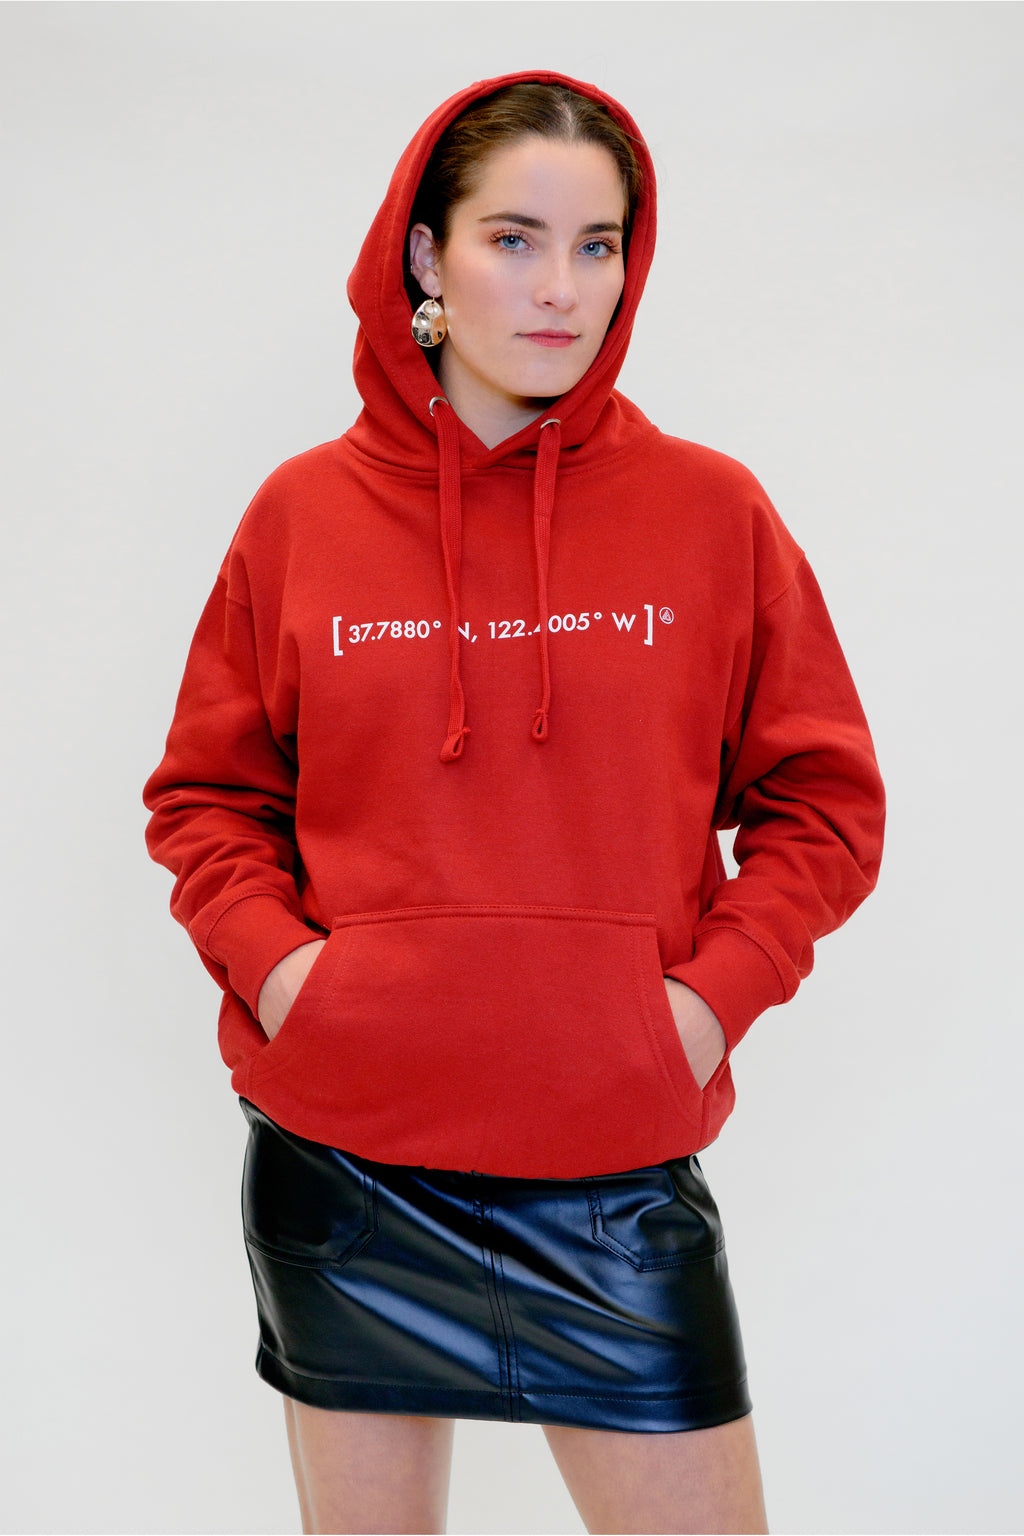 [coordinates] Hooded Sweatshirt - Shop657